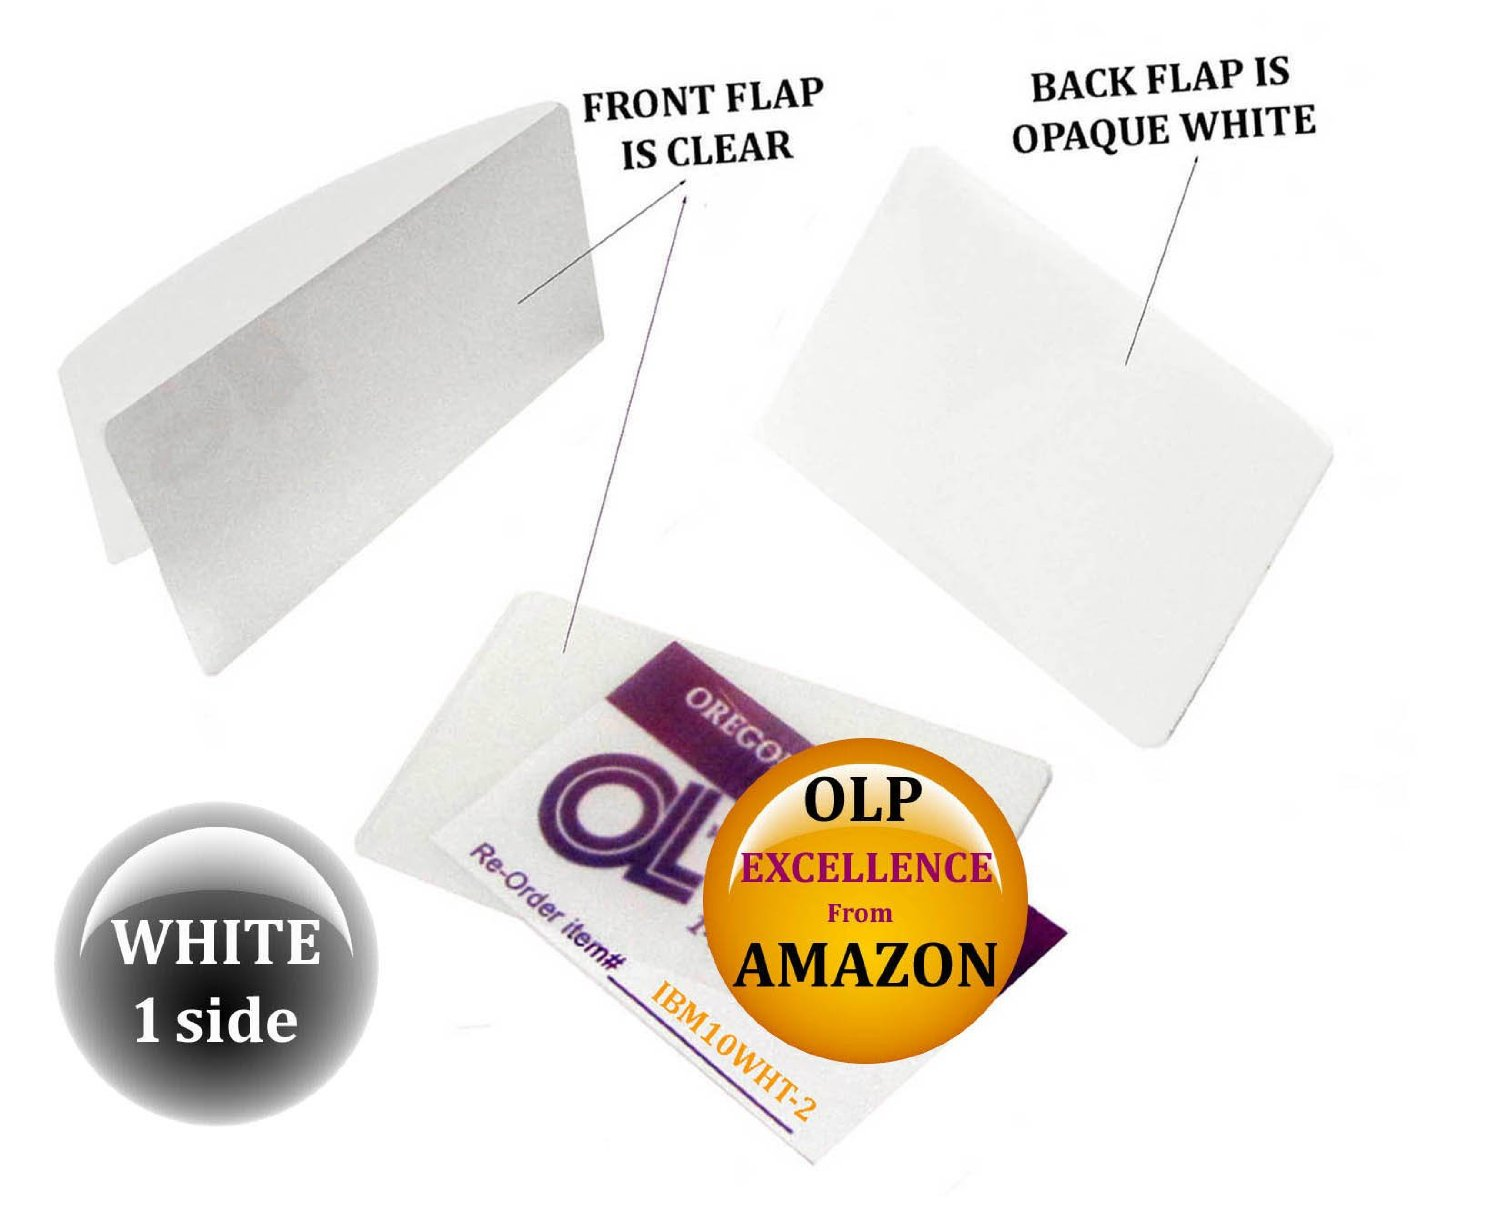 Qty 200 White/Clear IBM Card Laminating Pouches 2-5/16 x 3-1/4 by LAM-IT-ALL